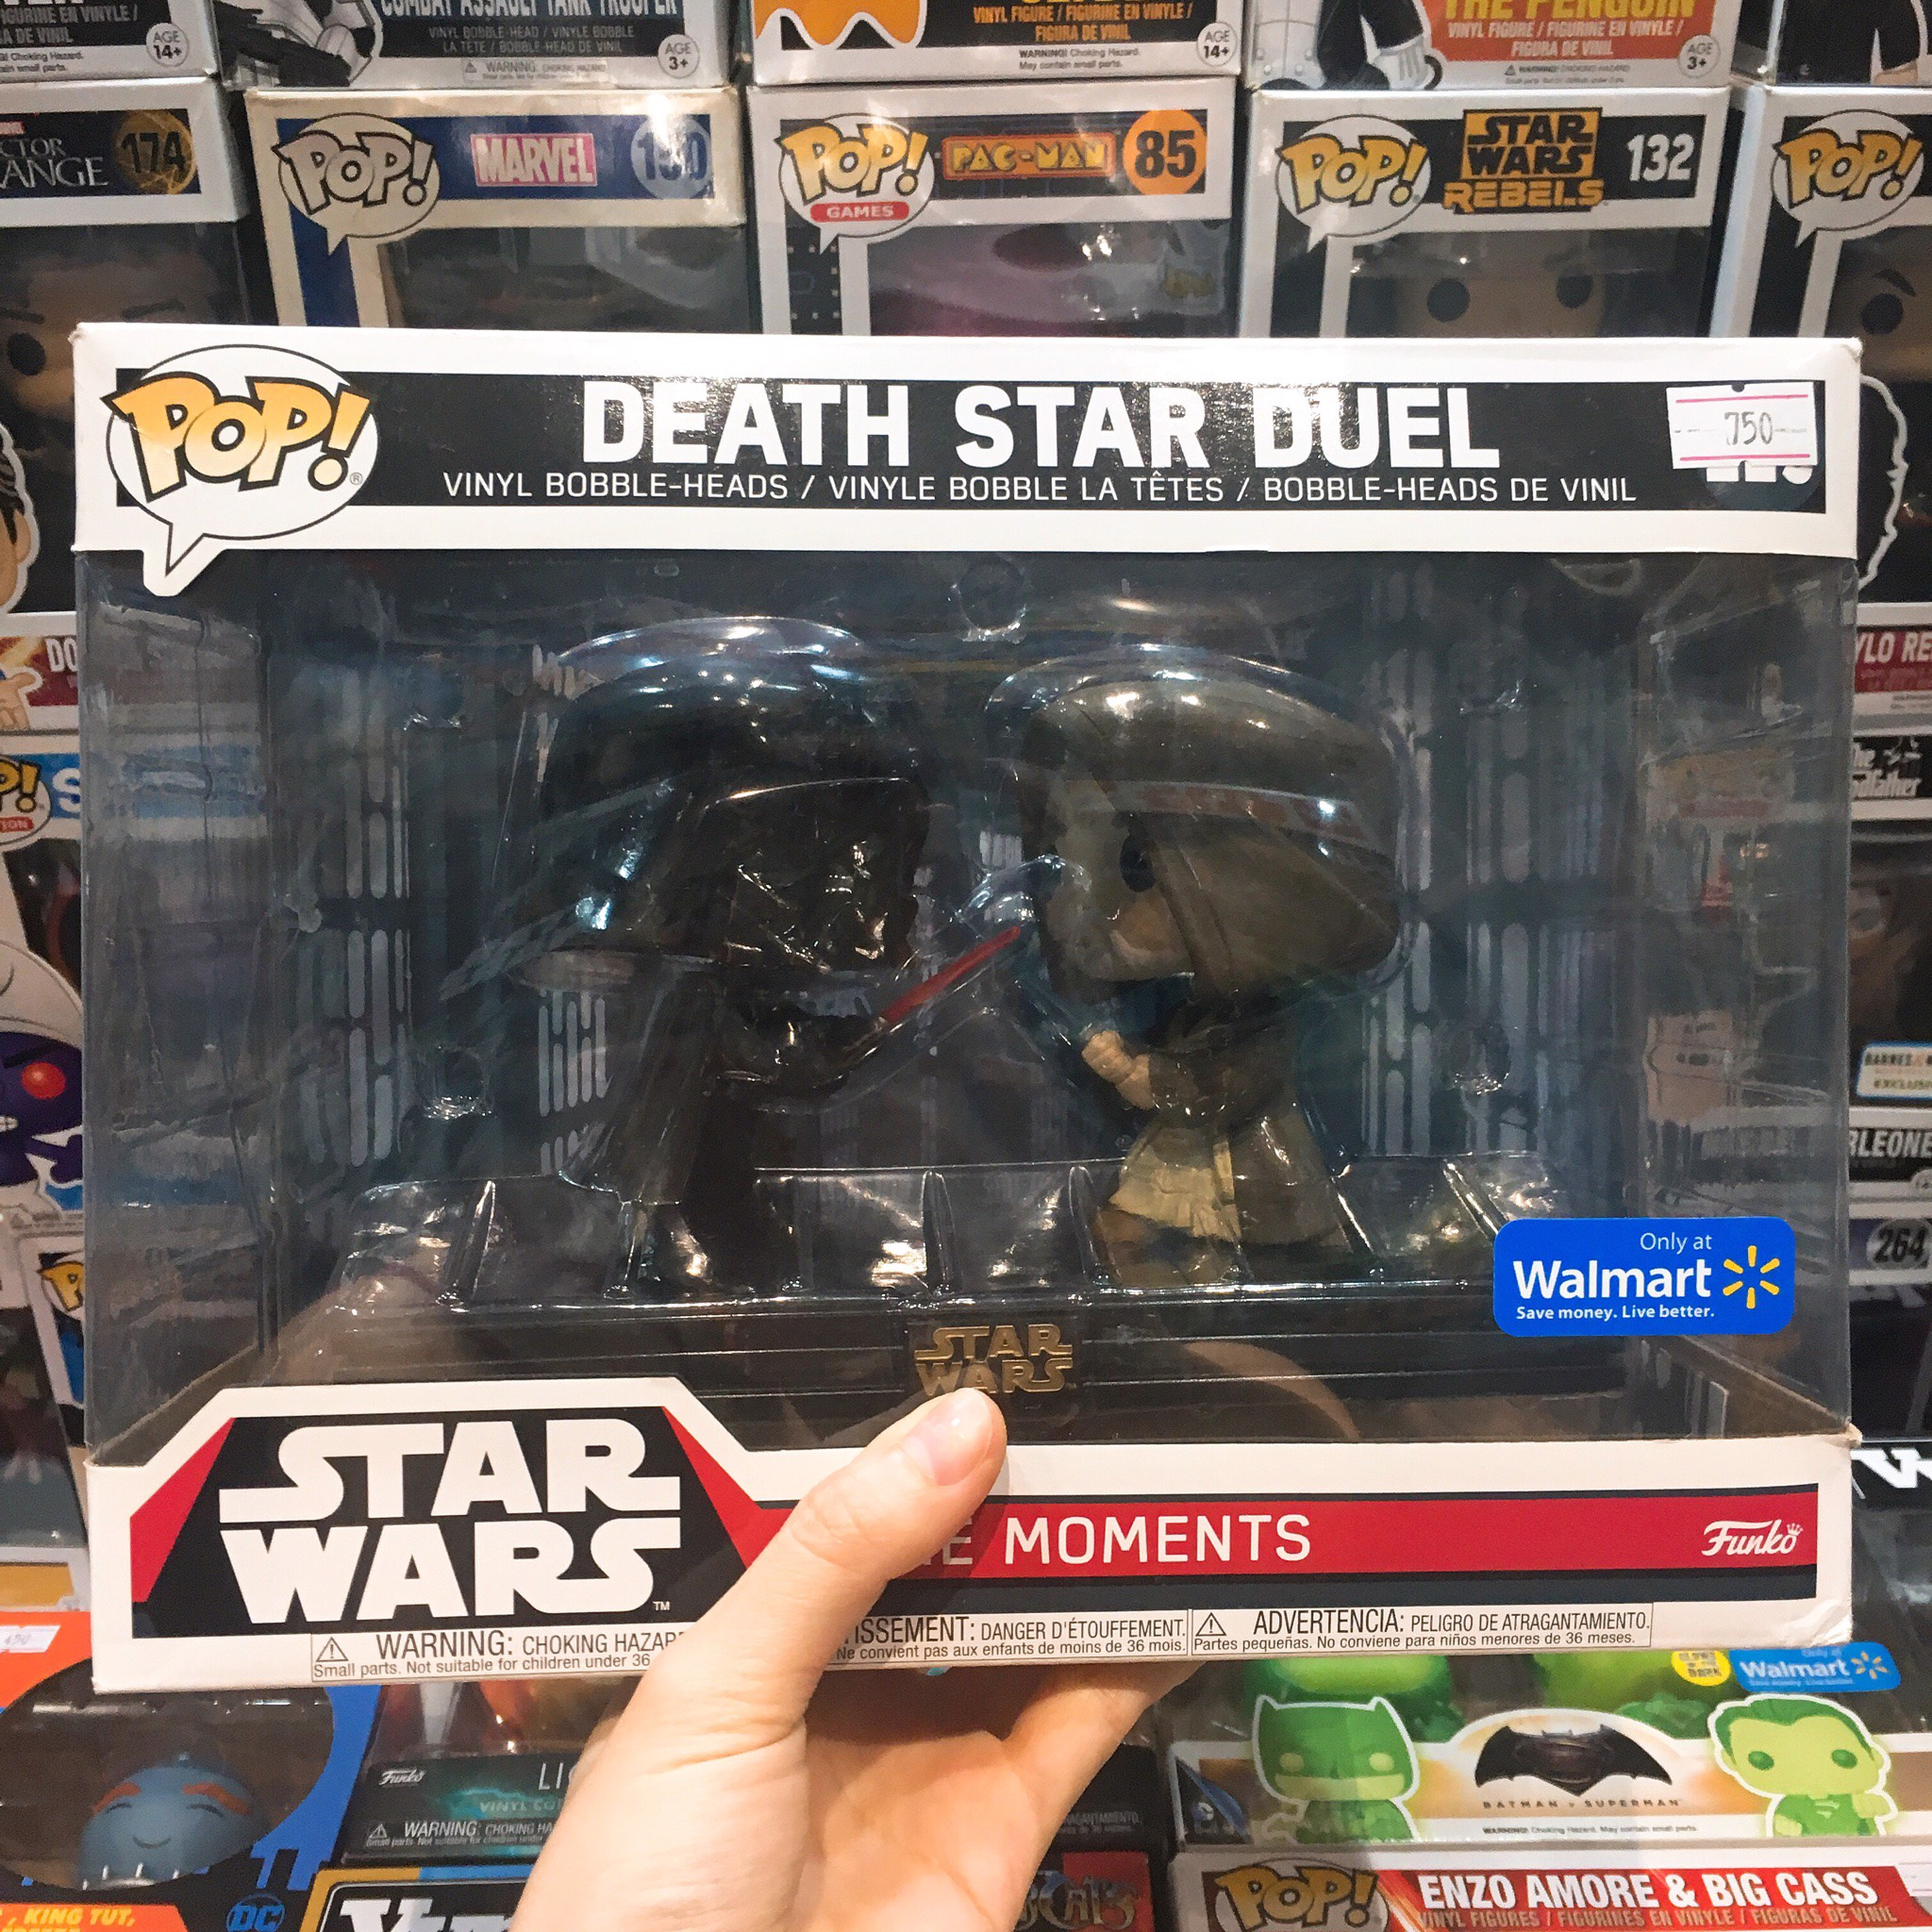 [CÓ SẴN] FUNKO POP 225 2 Pack Darth Vader & Obi Wan - Death Star Duel